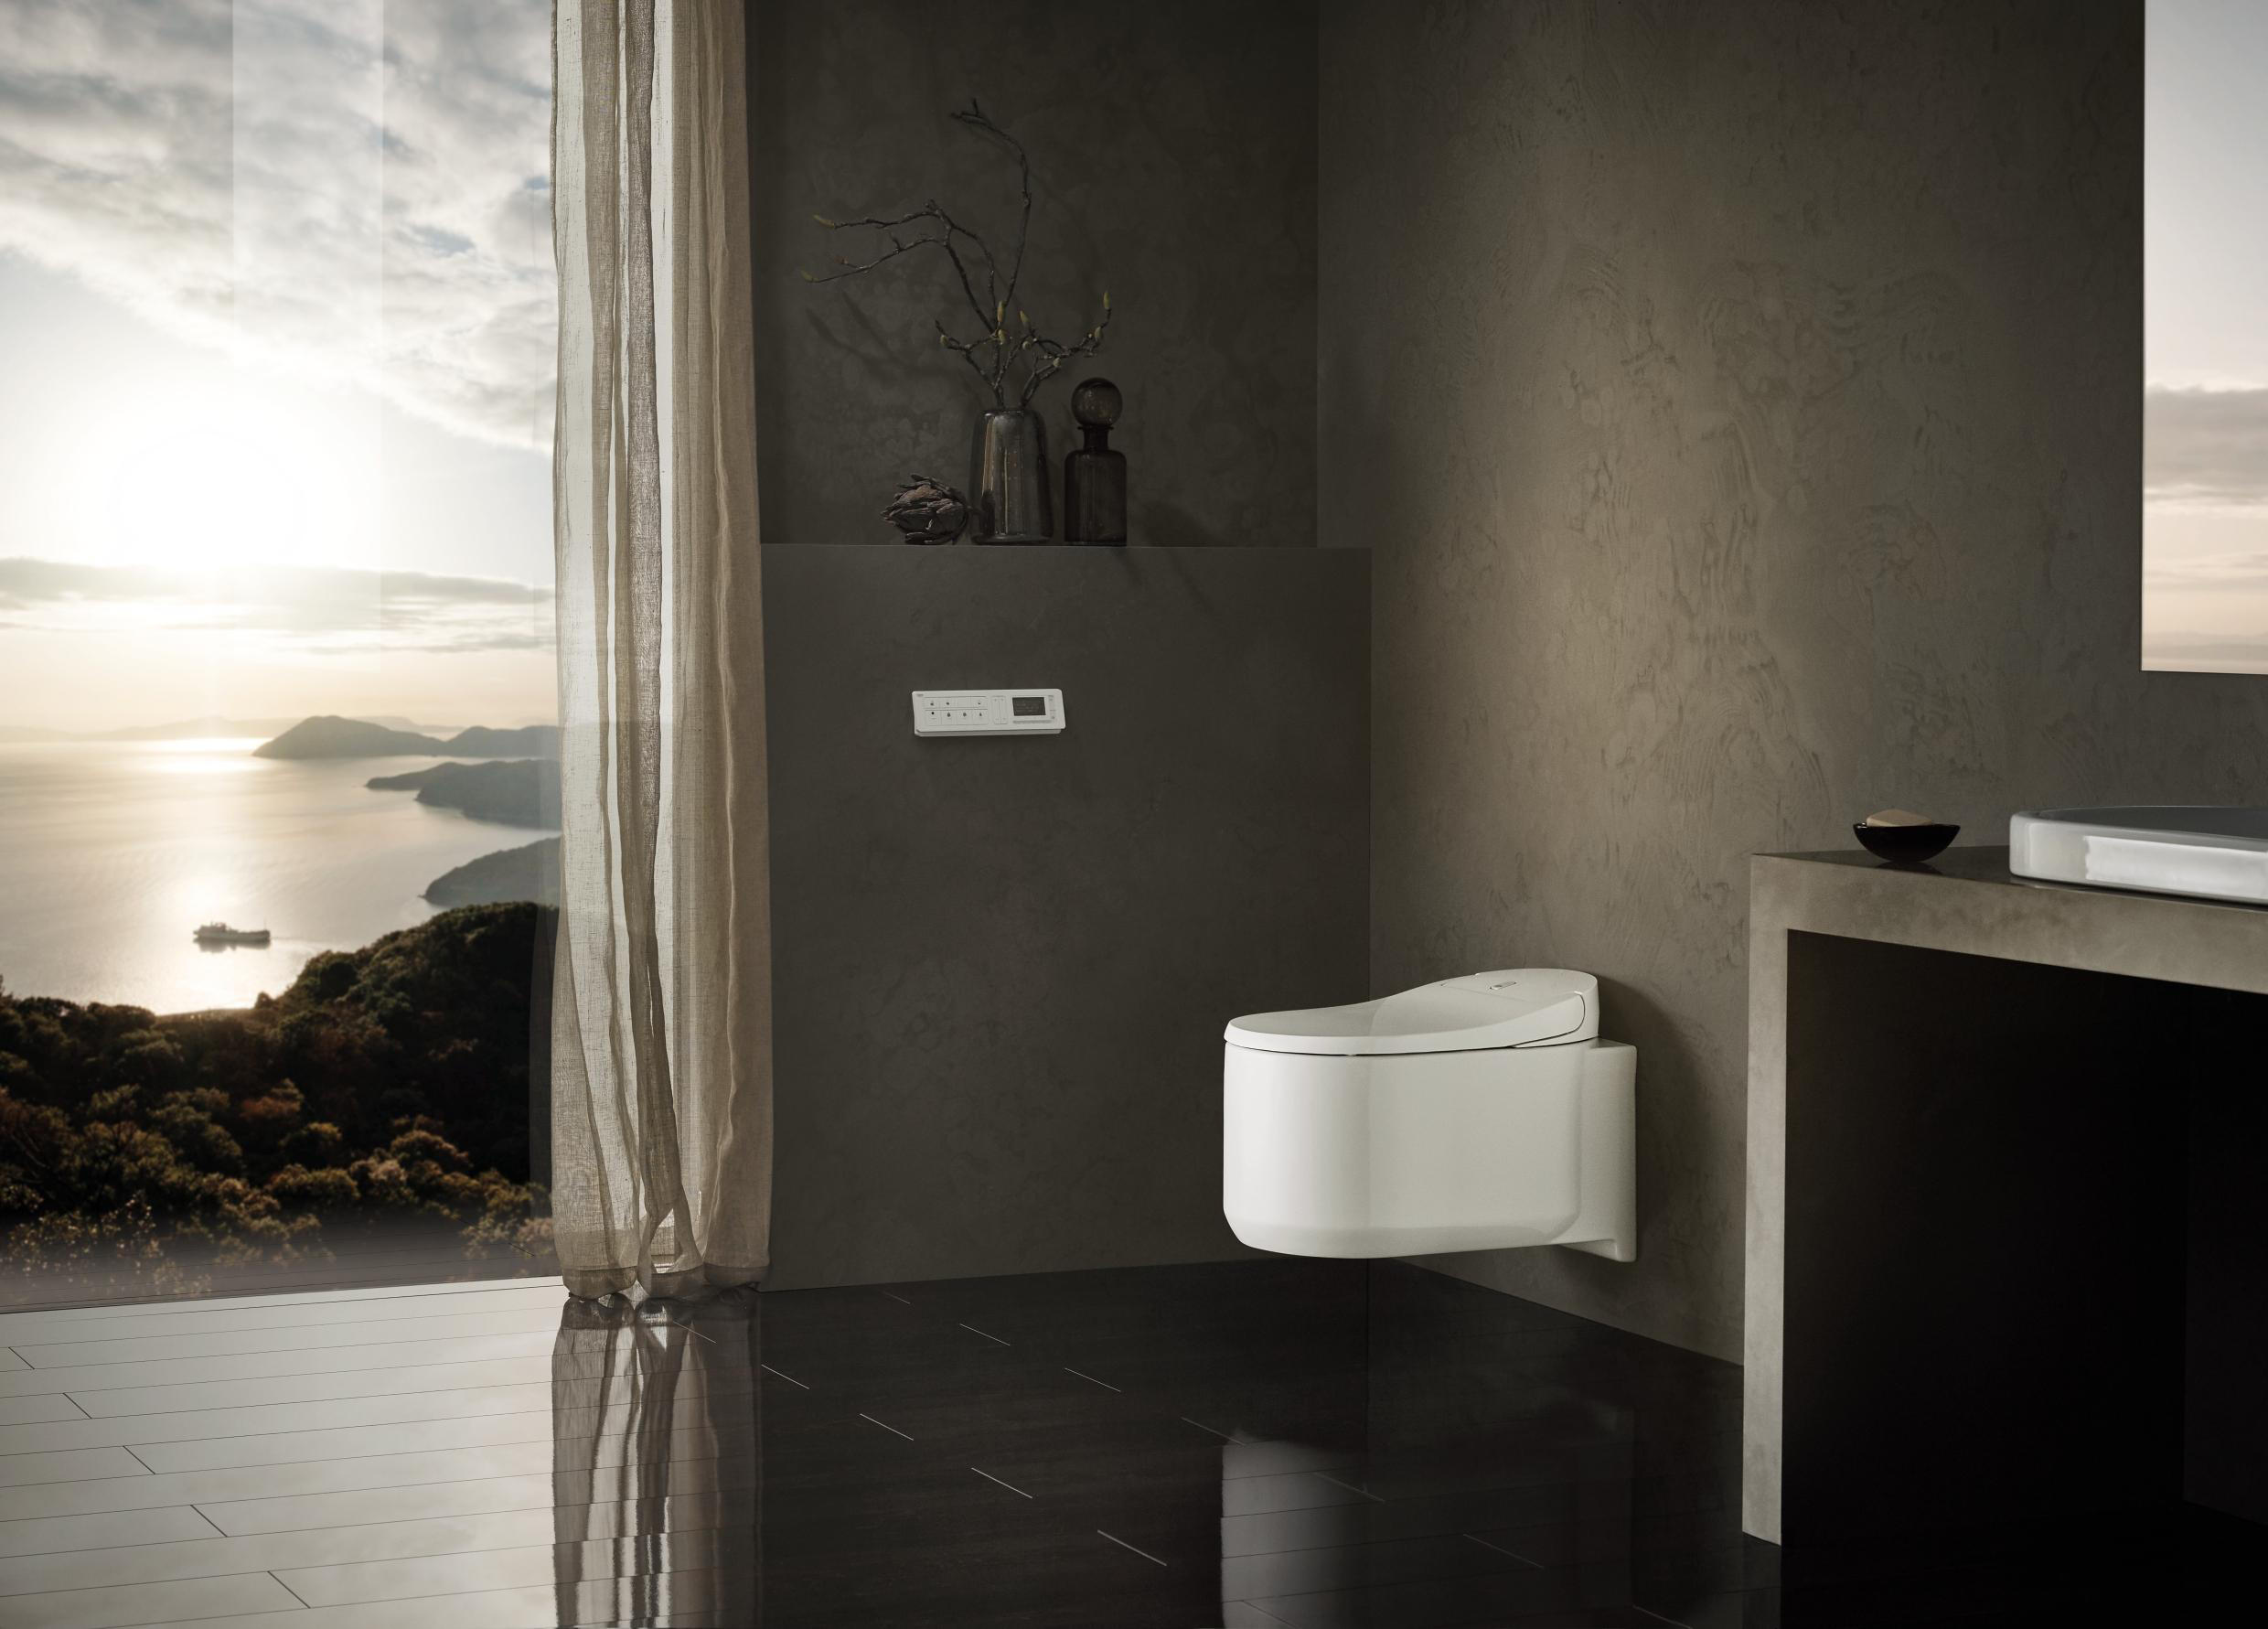 GROHE SENSIA® ARENA SHOWER TOILET - WC from GROHE | Architonic